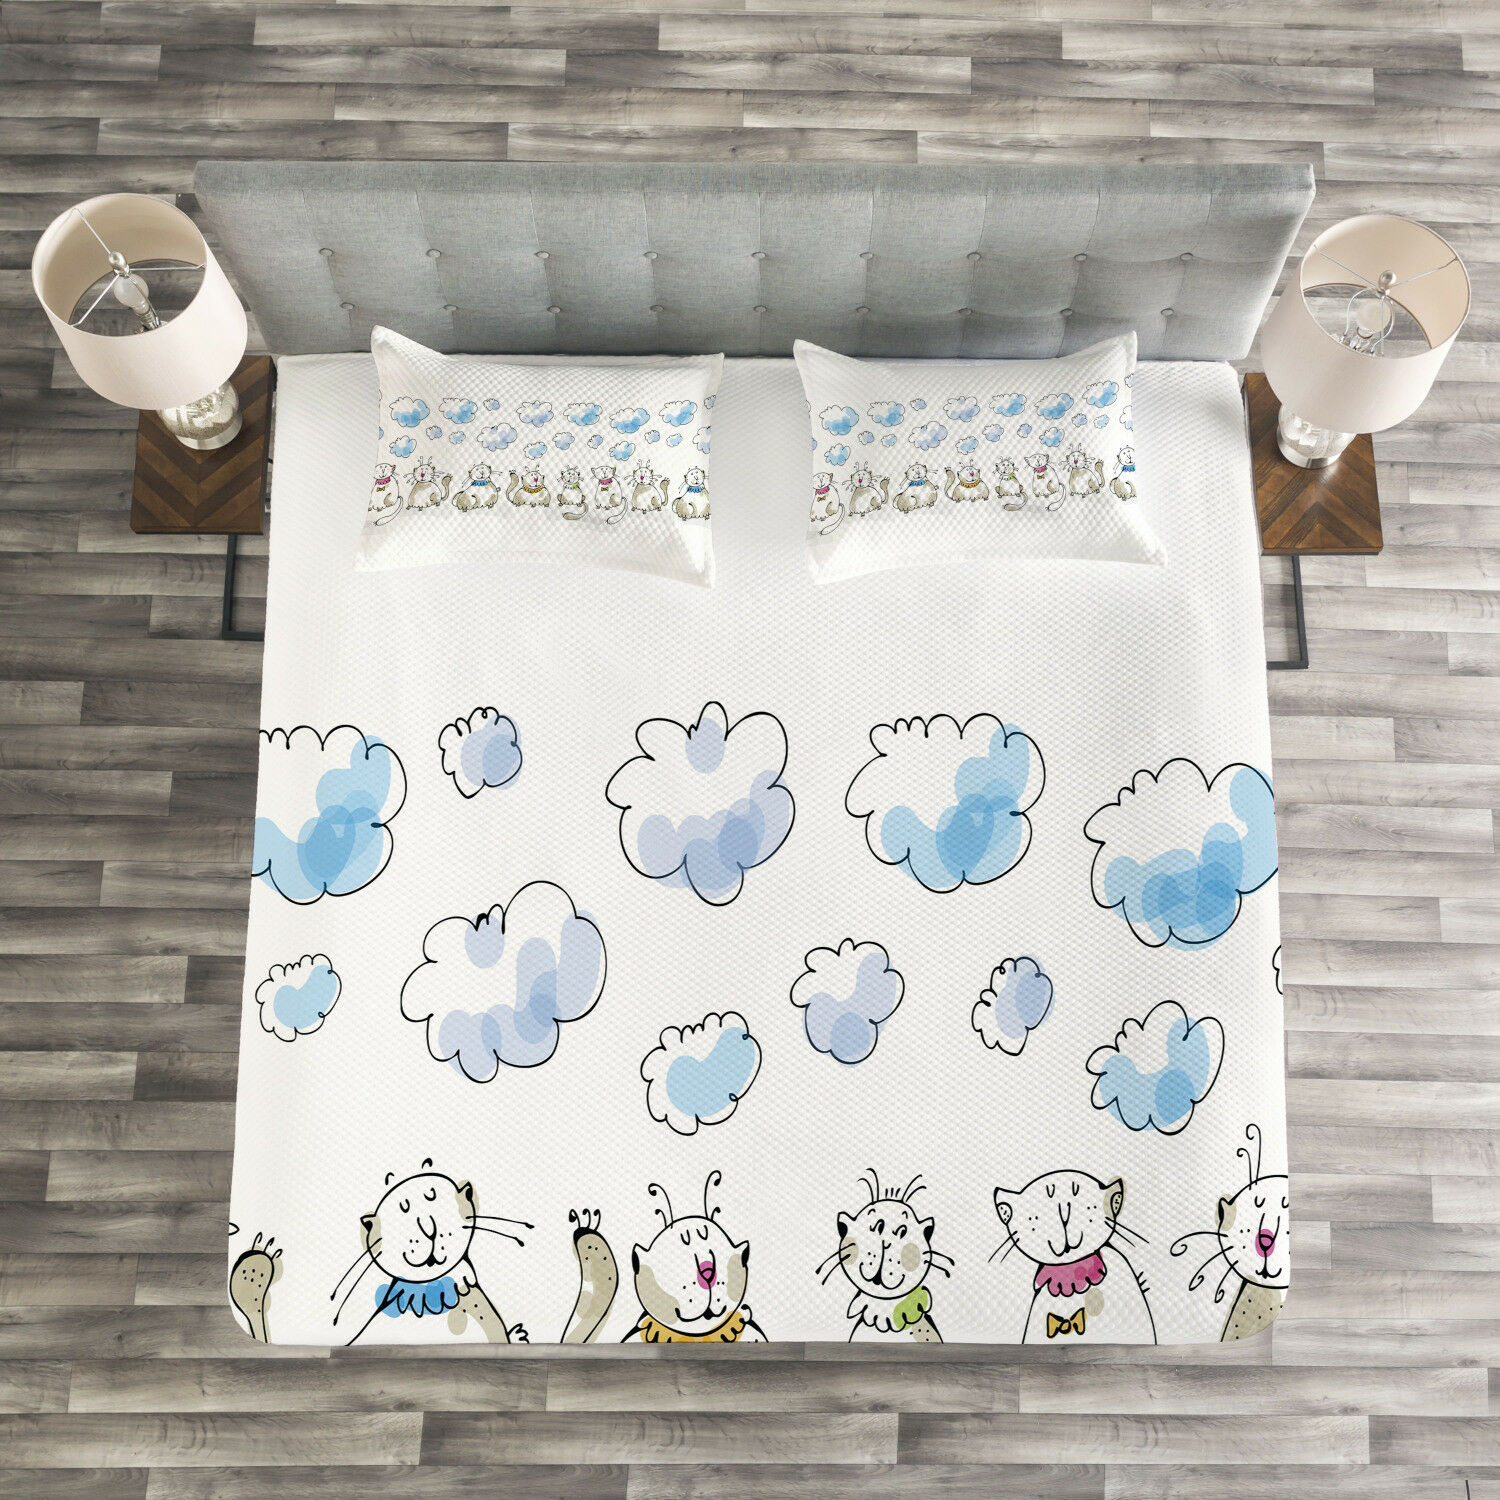 Baby Quilted Bedspread & Pillow Shams Set, Cats Sitting with Collars Print